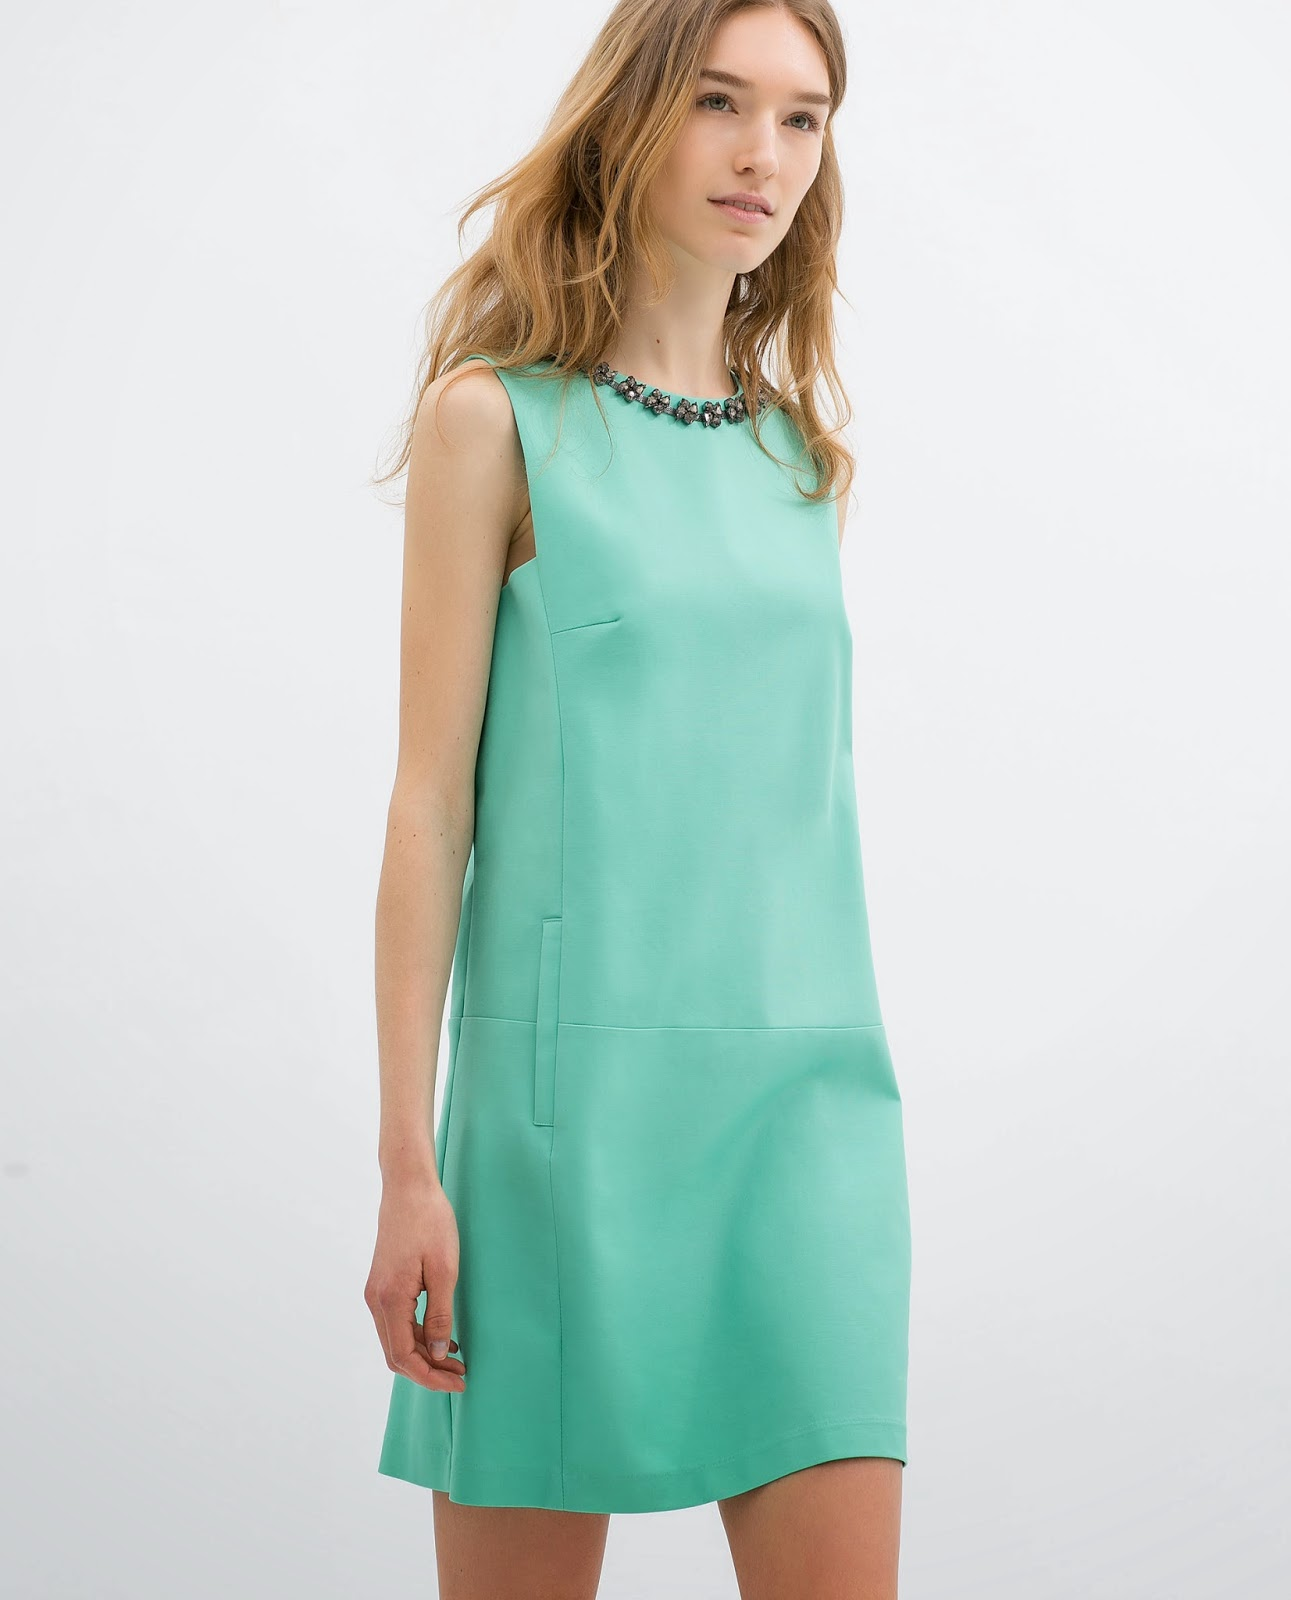 zara  mint green dress